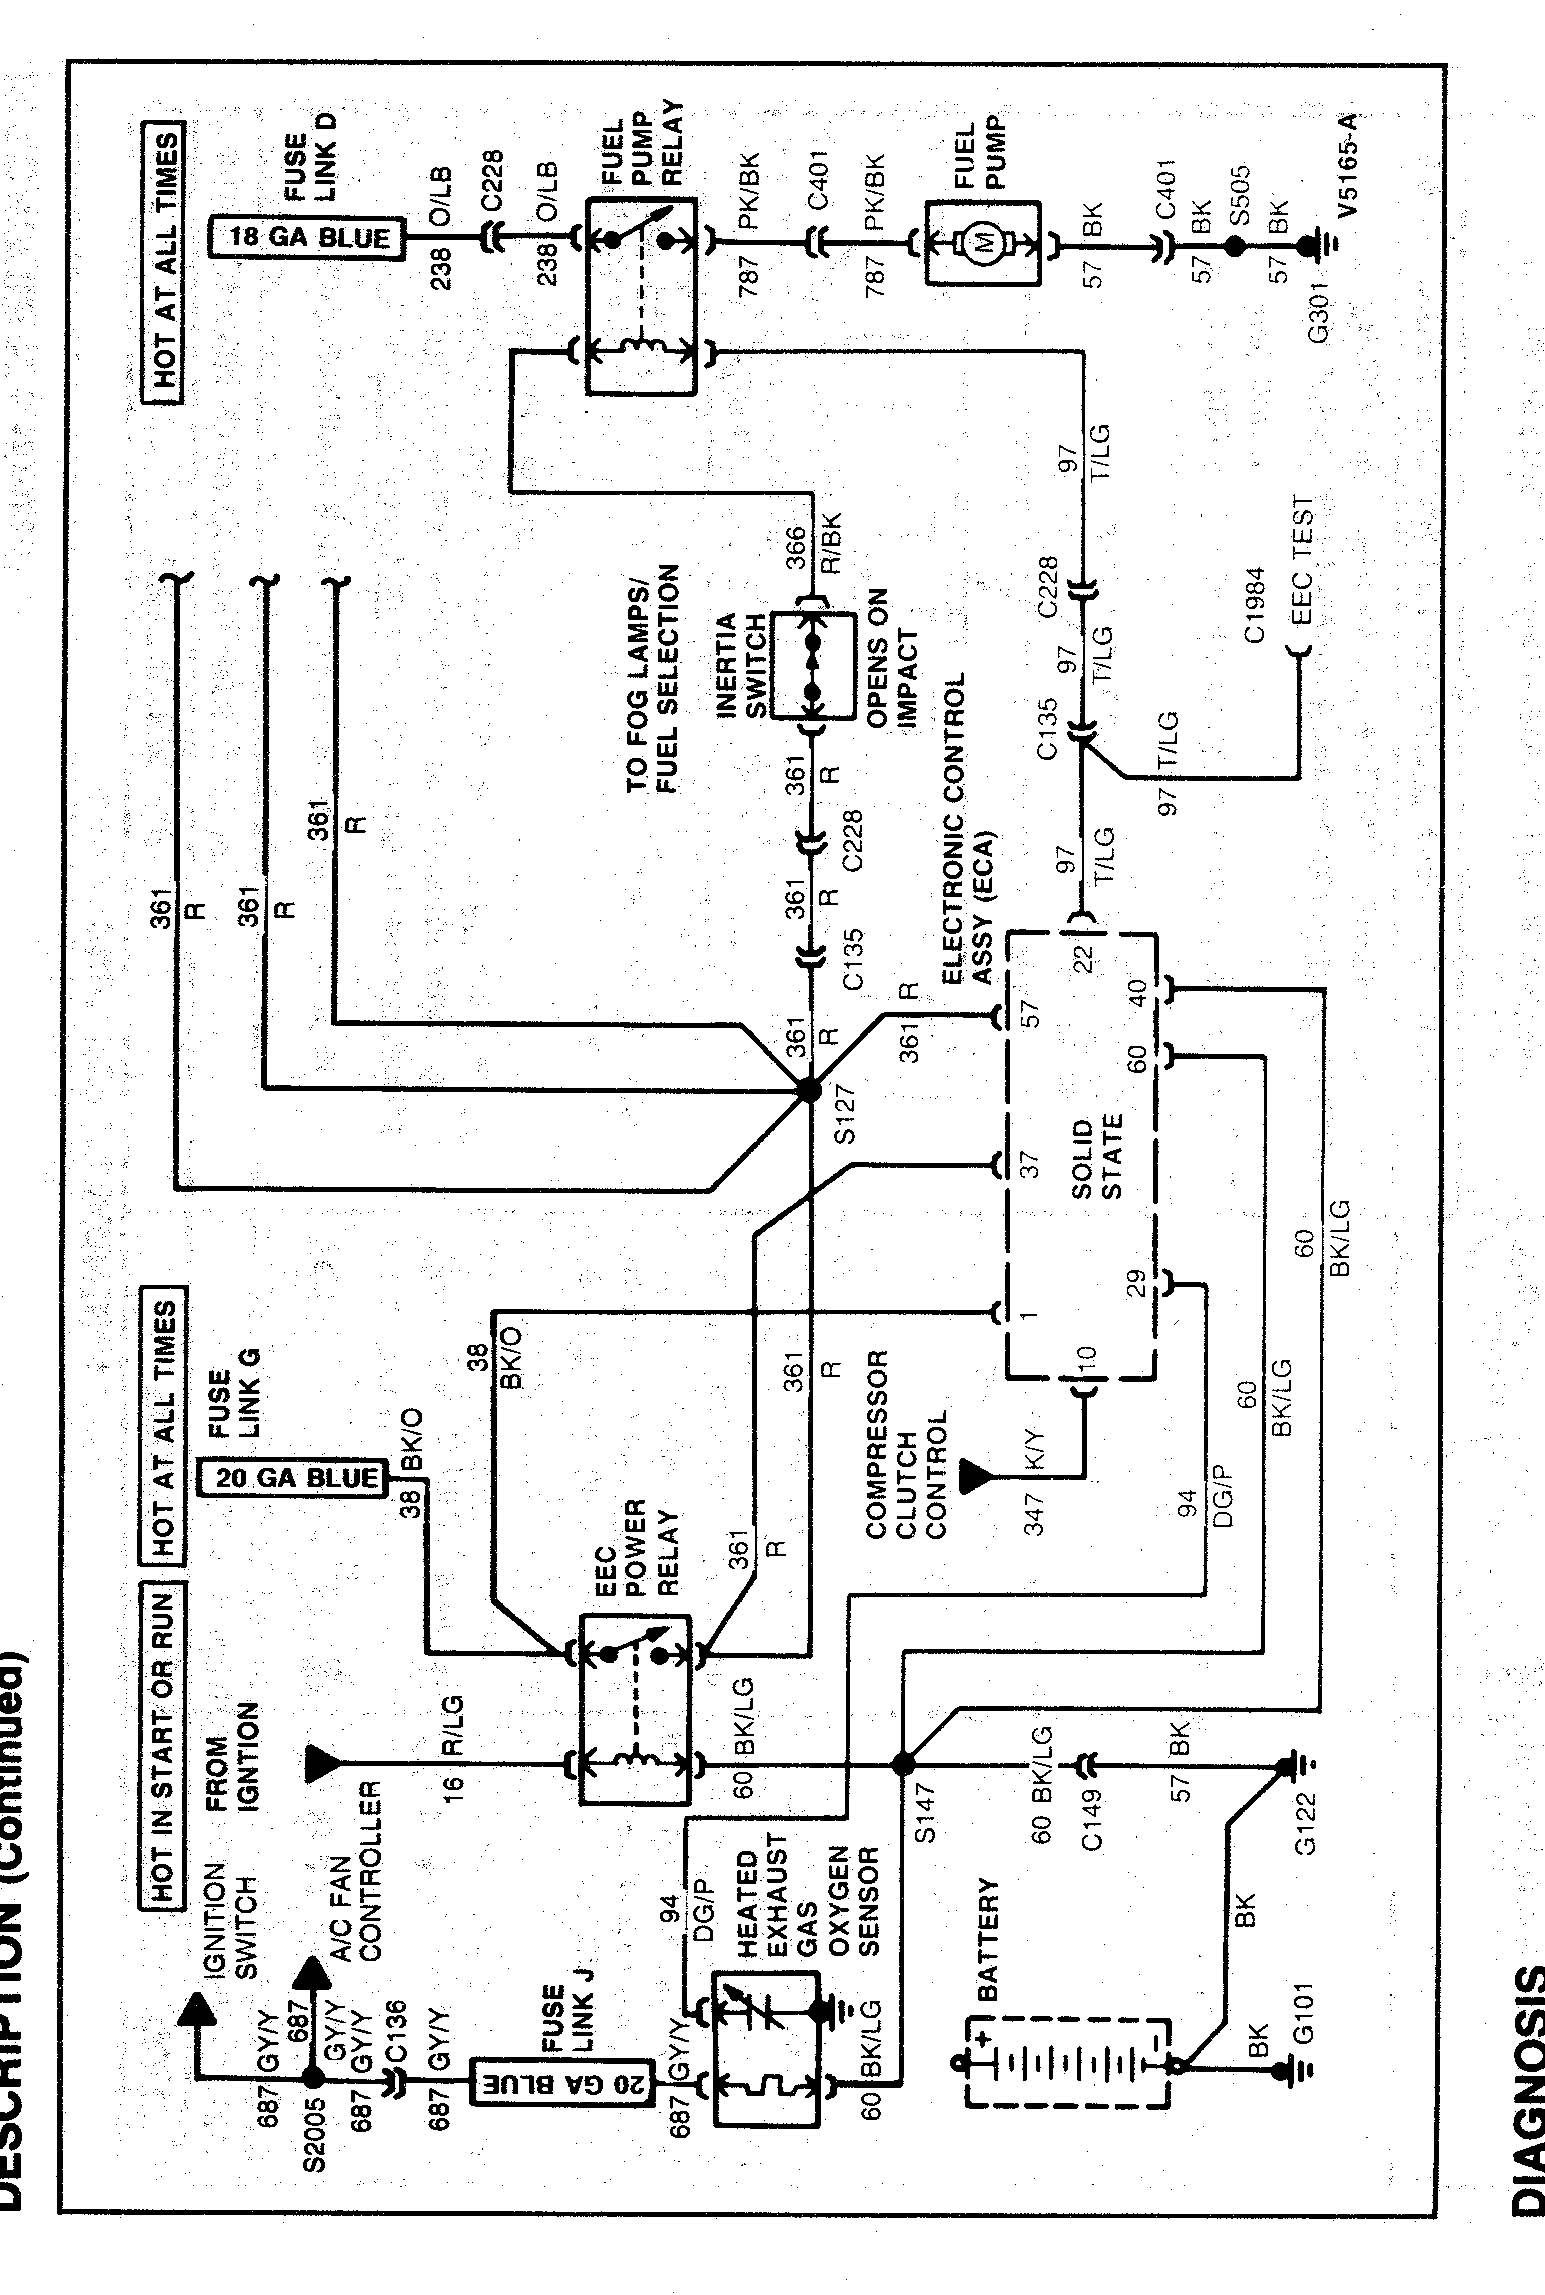 fuel pump wiring diagram for 2001 mustang fuel pump wiring ford fuel pump wiring diagram nilza net